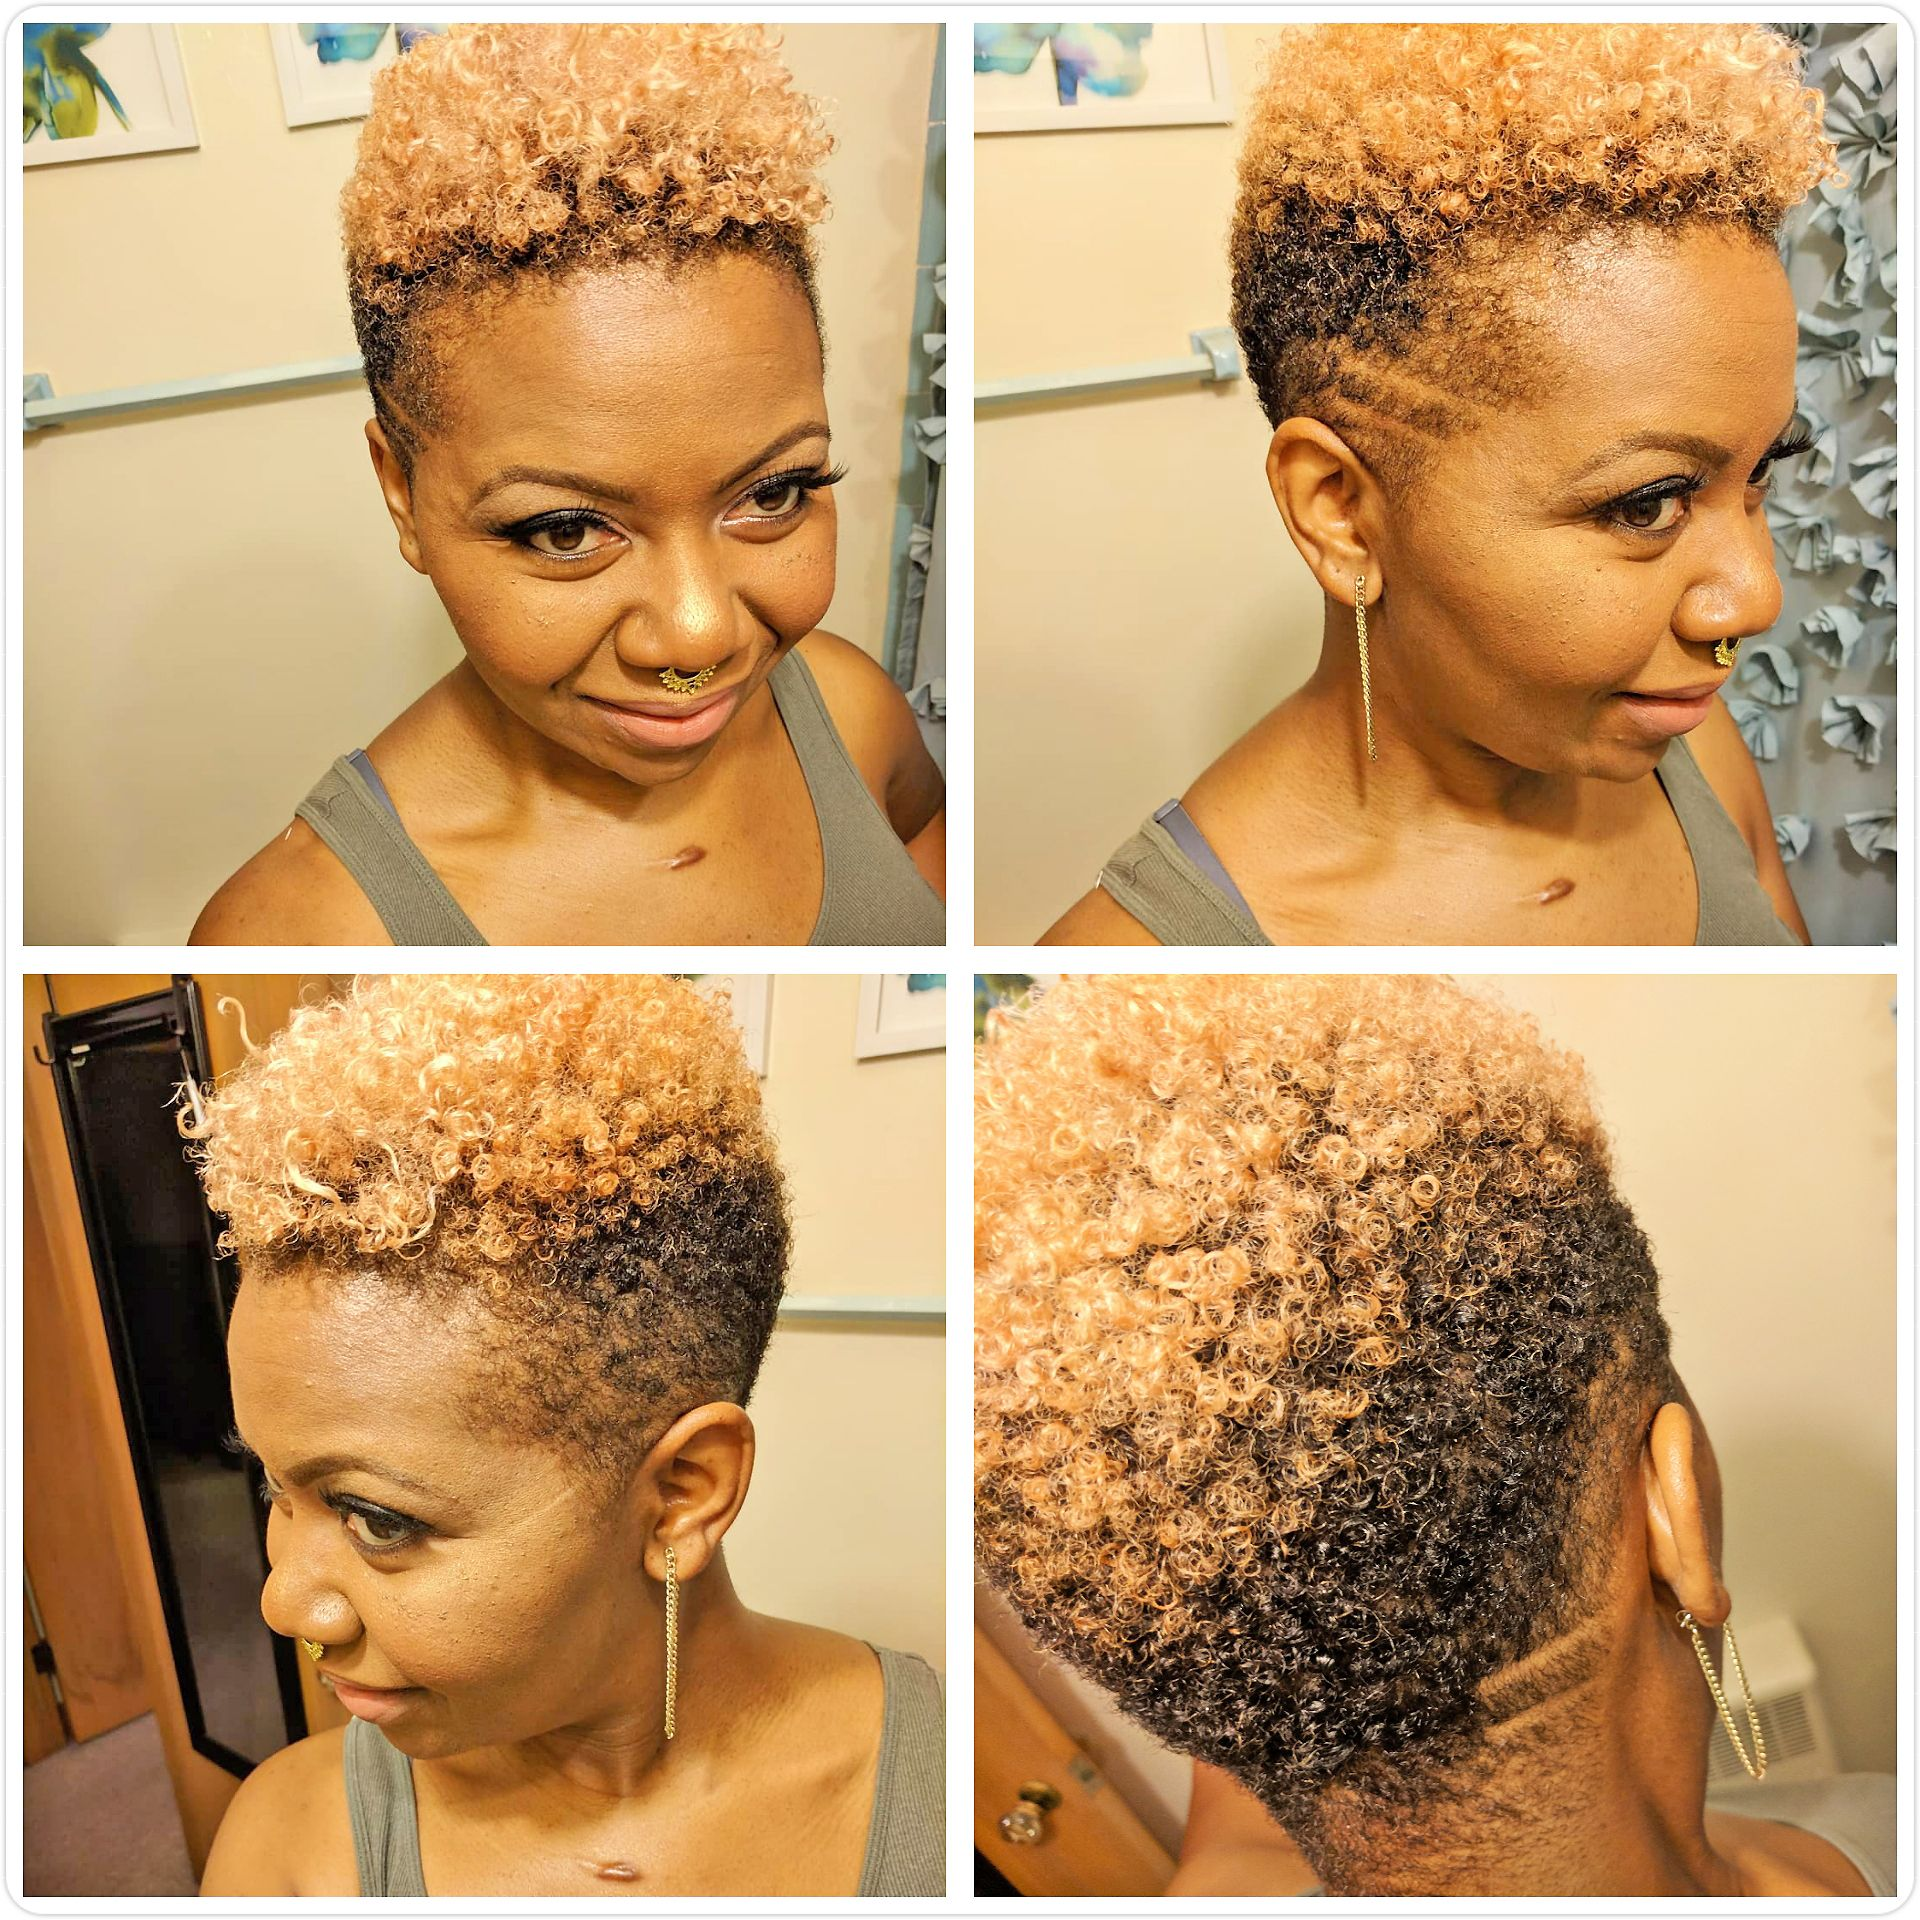 Pin By Ja I Davis On 3 Hair And Nails Blonde Natural Hair Natural Hair Styles Natural Hair Styles For Black Women